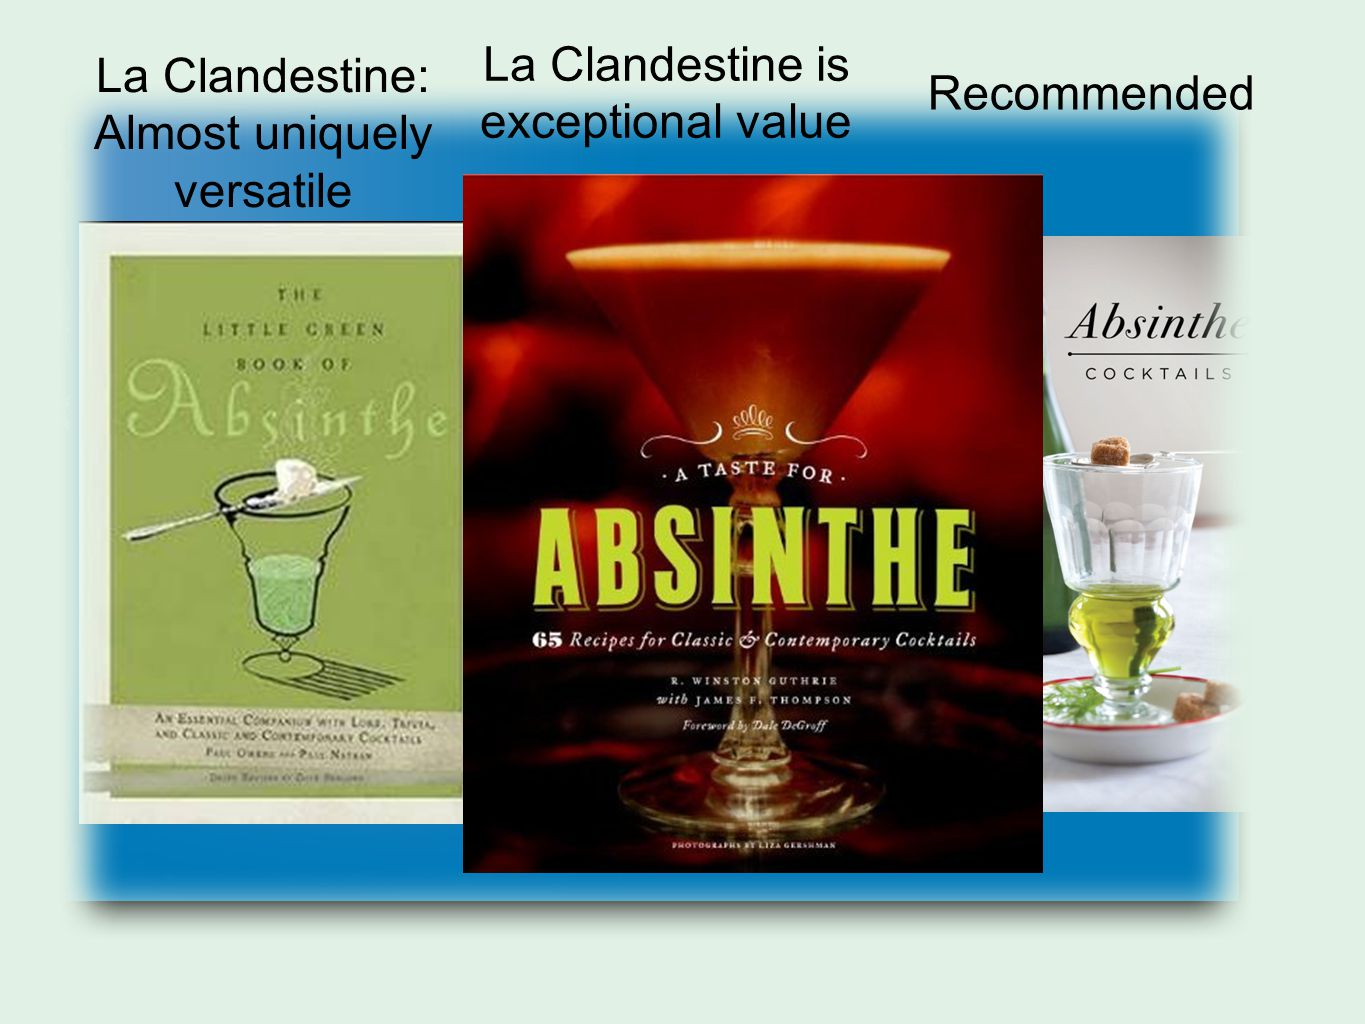 La Clandestine La Clandestine is a favorite of Absinthe professionals (Absinthiades). The absinthe connoisseur community (e.g. Wormwood Society) More